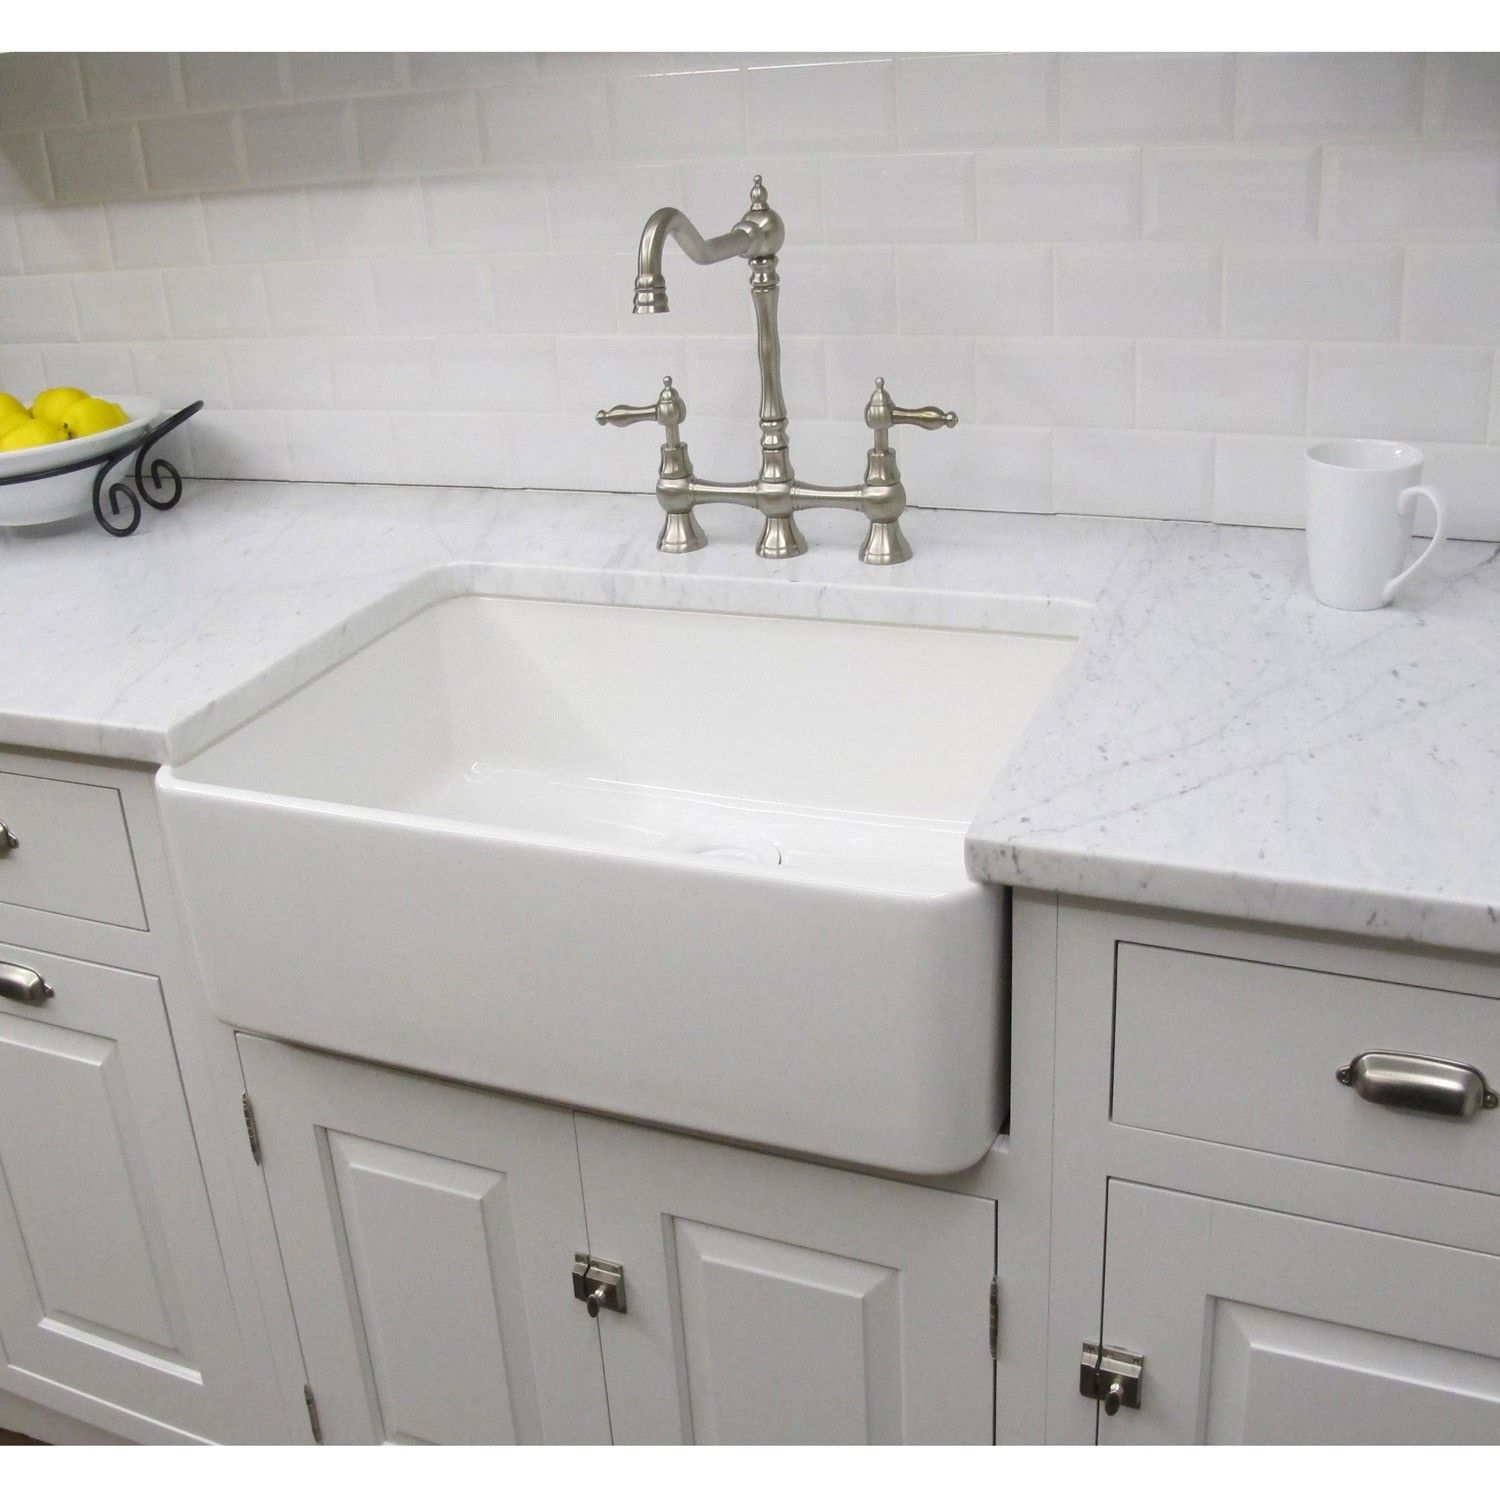 White Kitchen Sink Constructed Of Fireclay This Large Bathroom Sink Has A